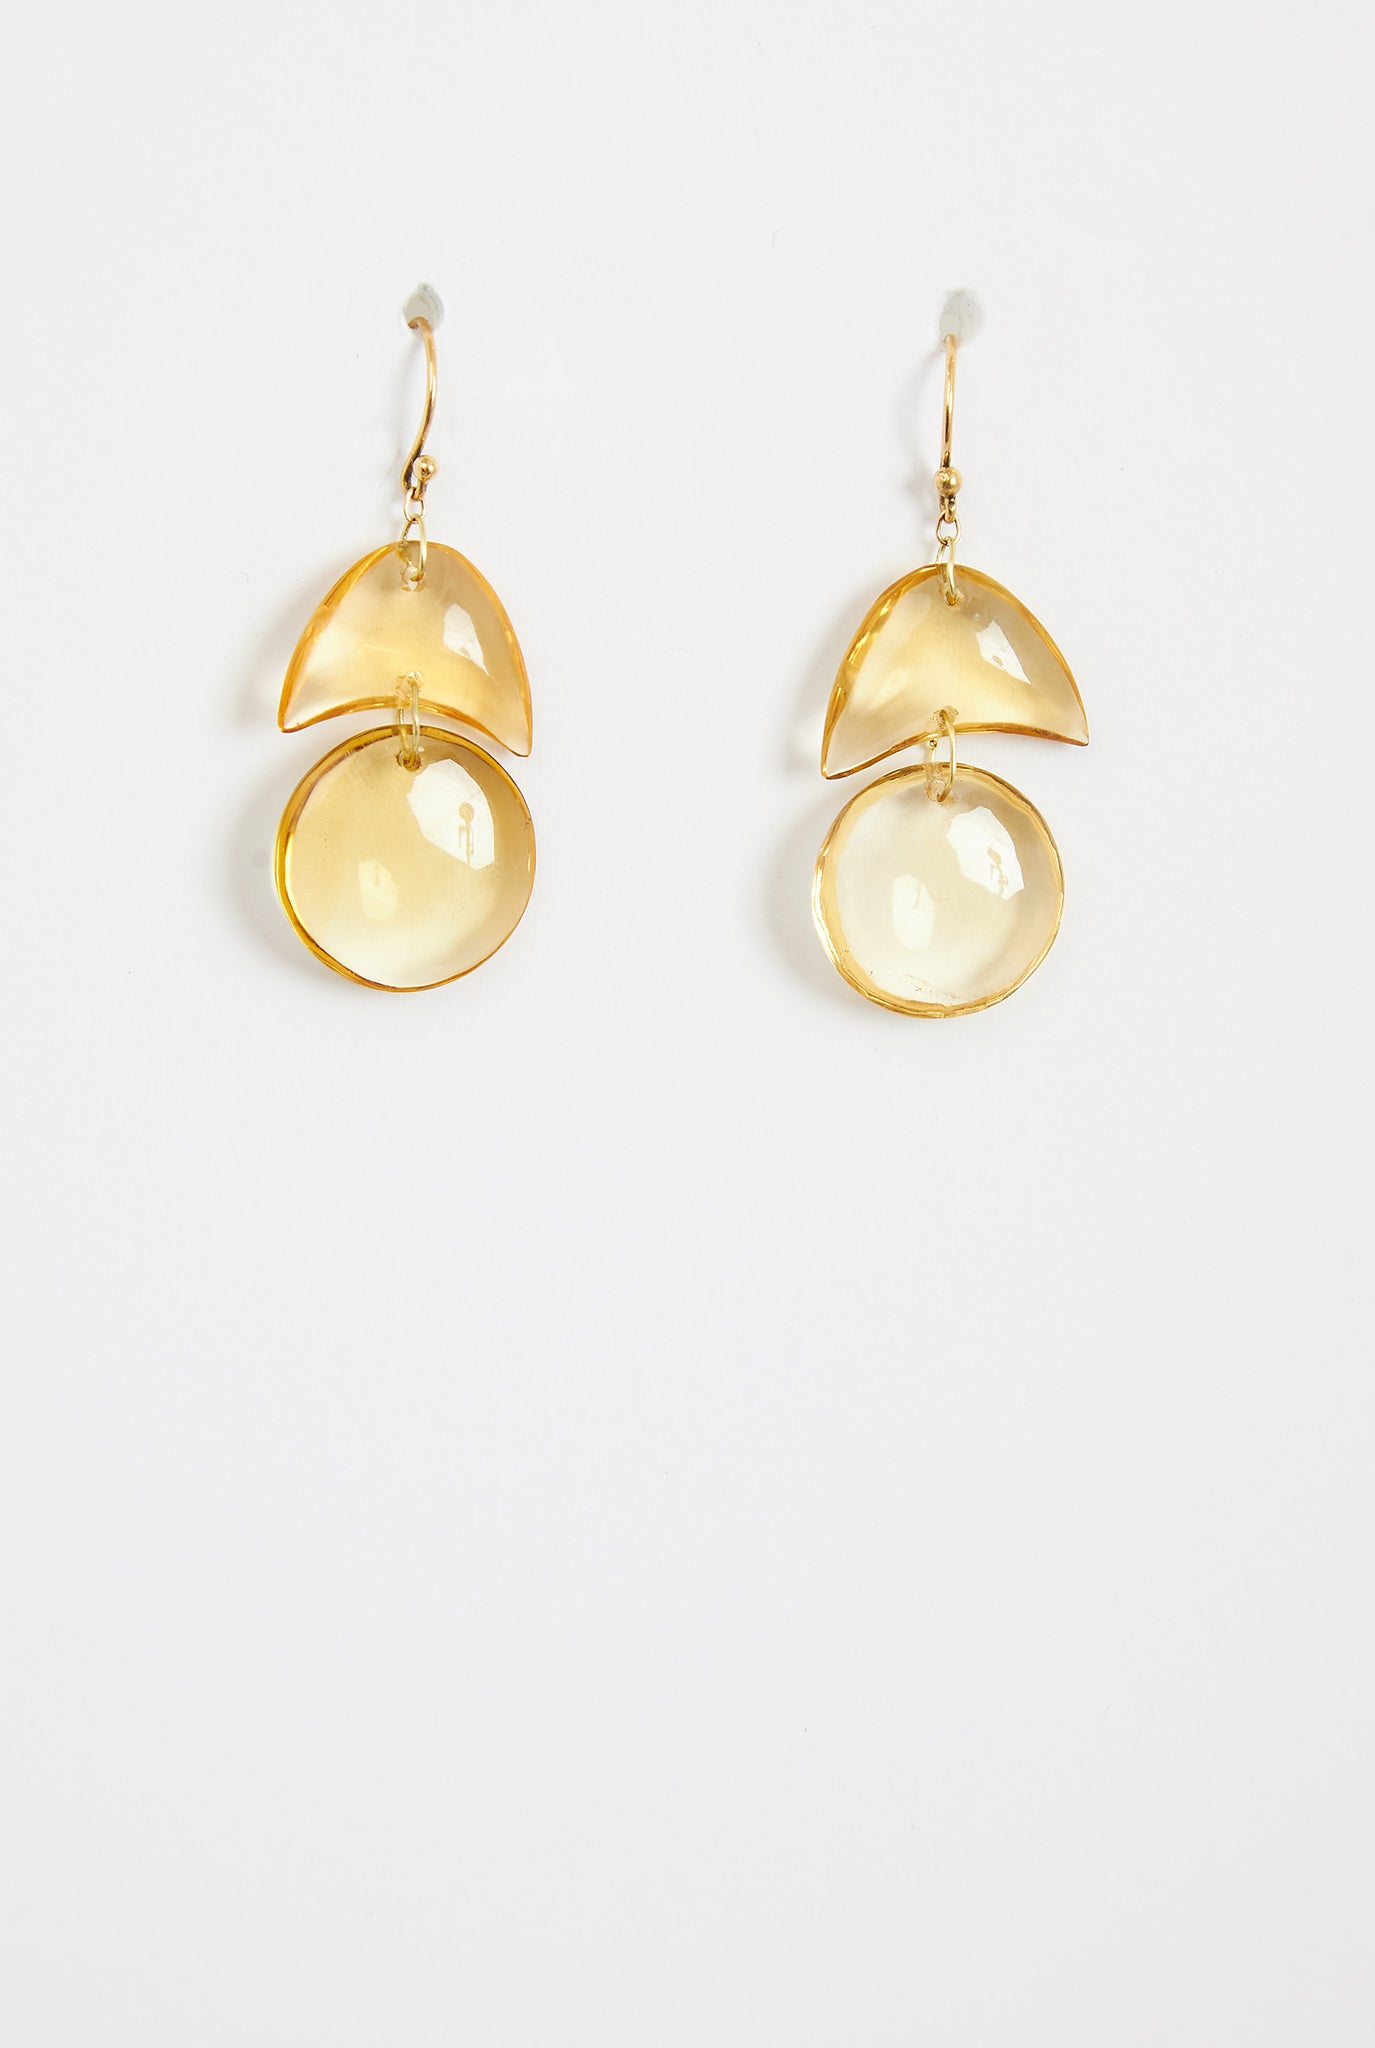 TEN THOUSAND THINGS Citrine Tiny Arps Earrings